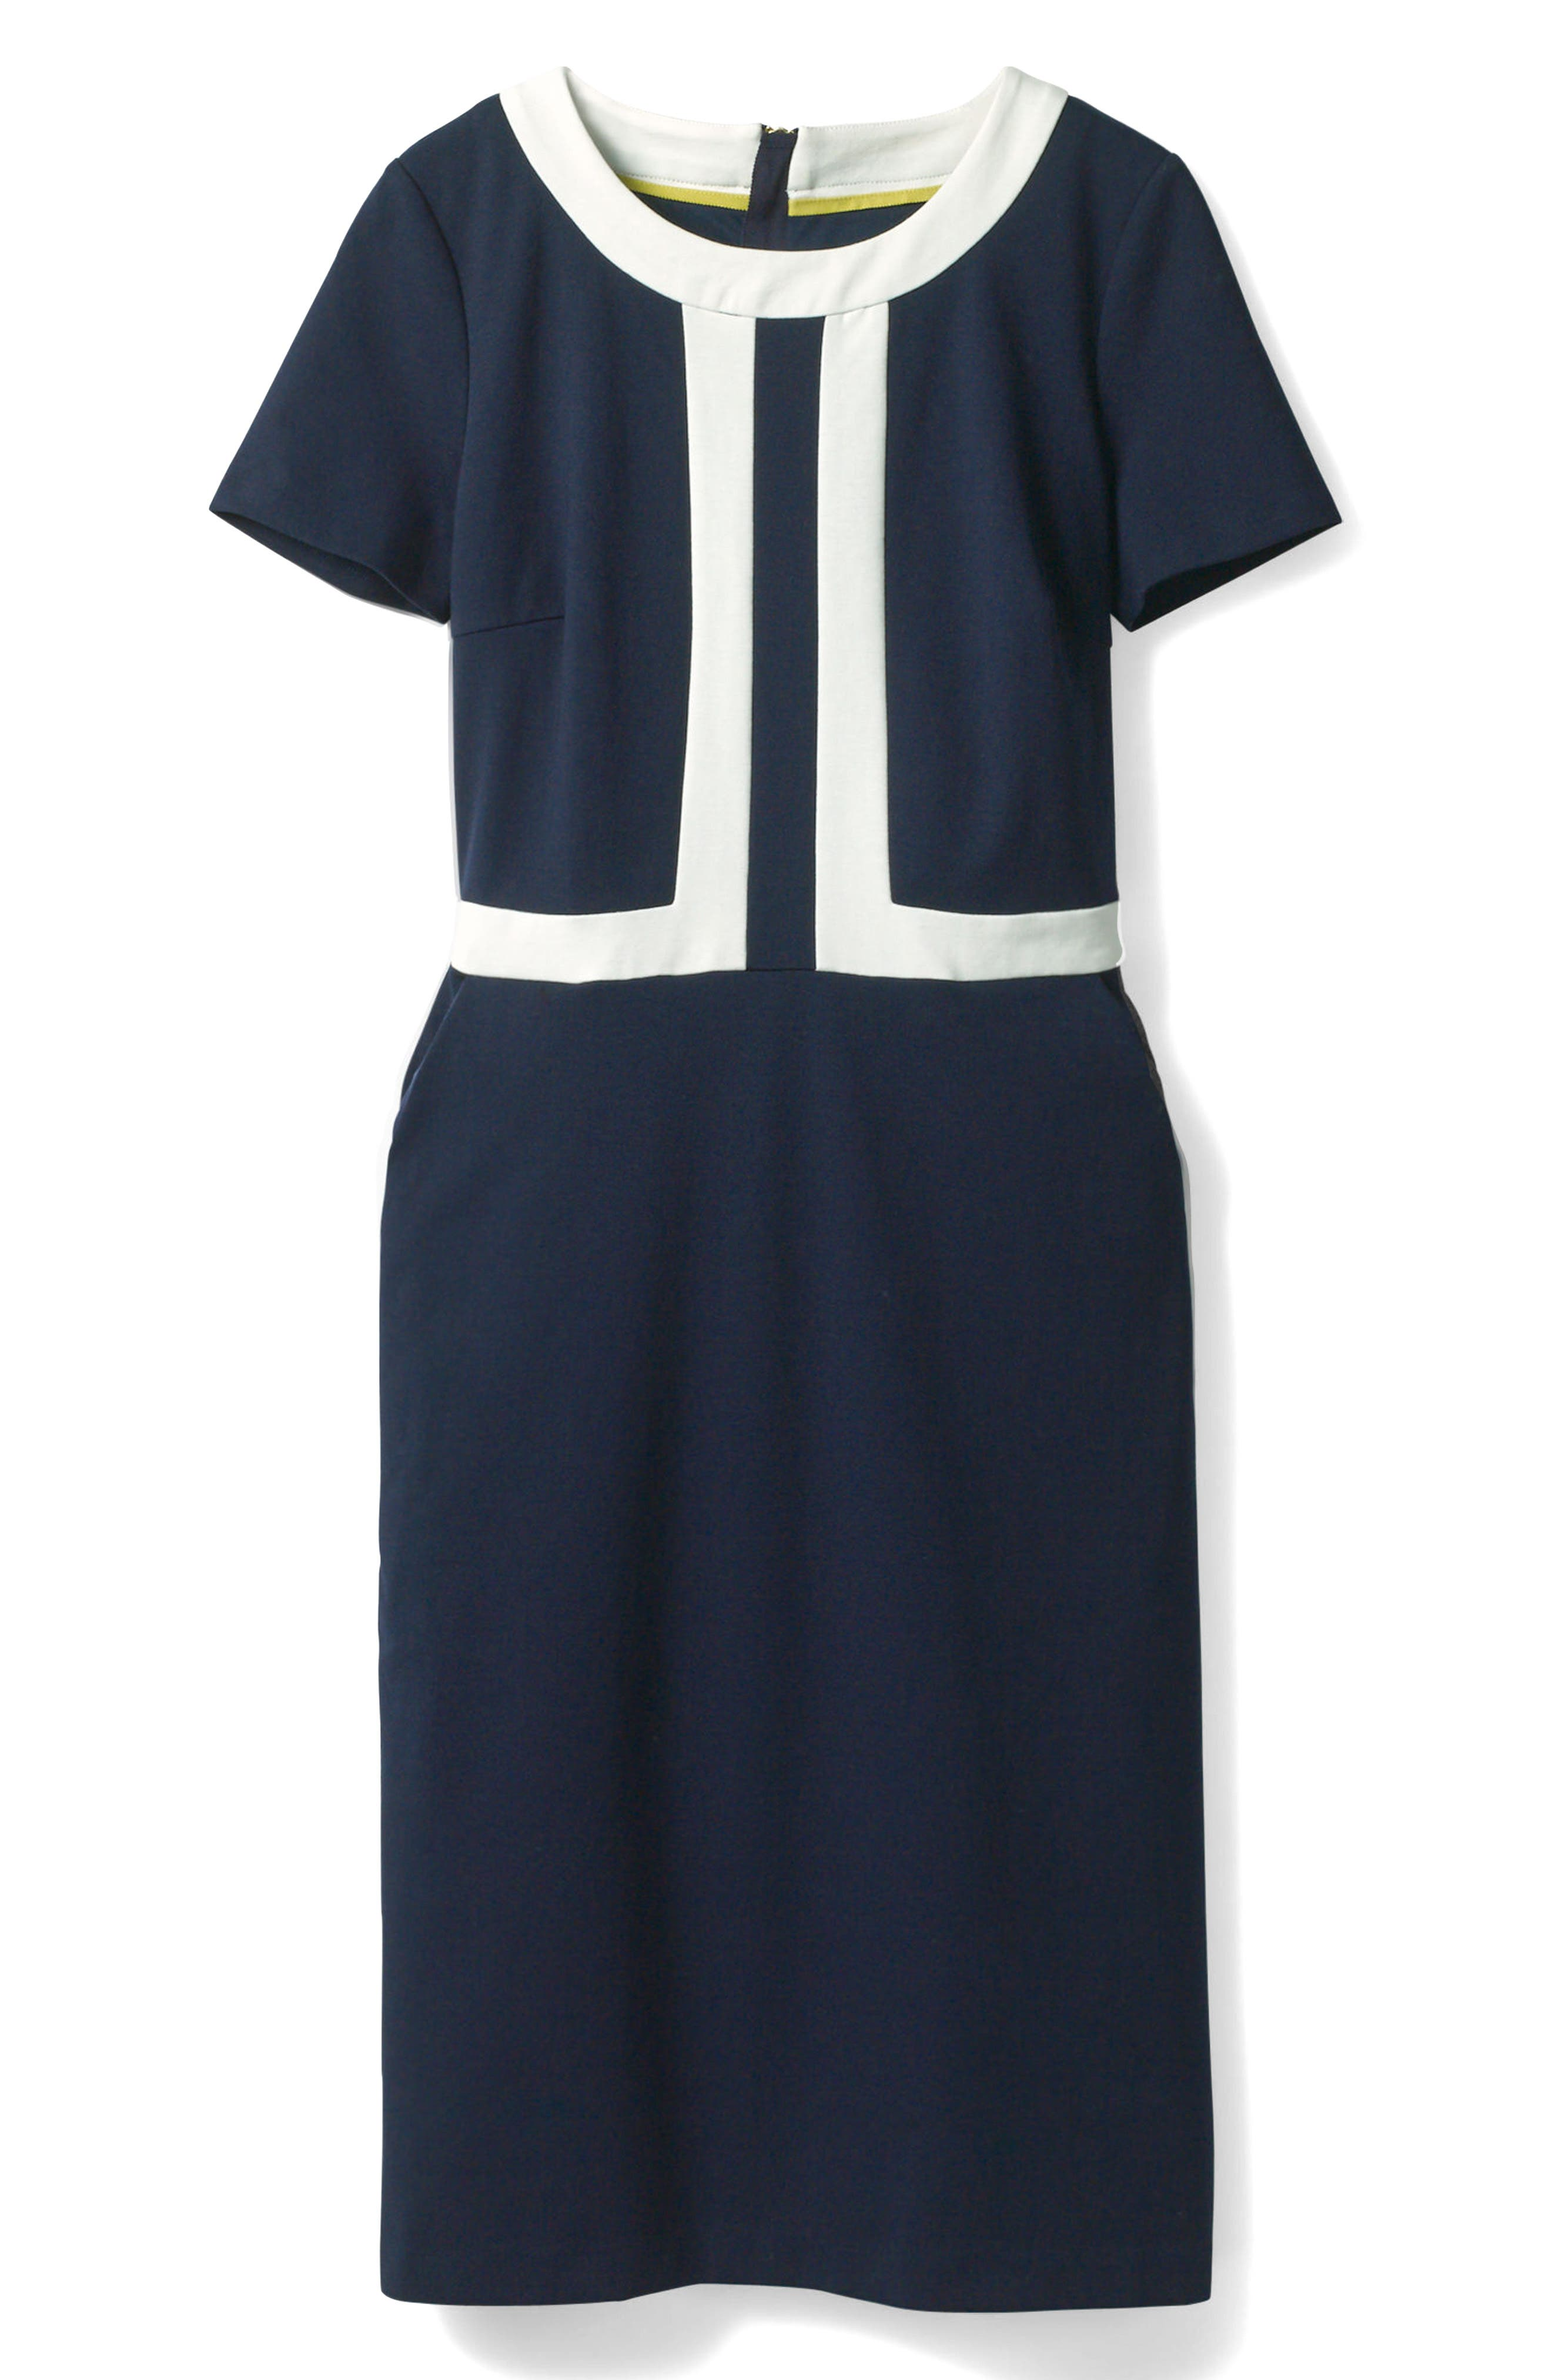 Colorblock A-Line Dress,                             Alternate thumbnail 6, color,                             Navy/ Ivory